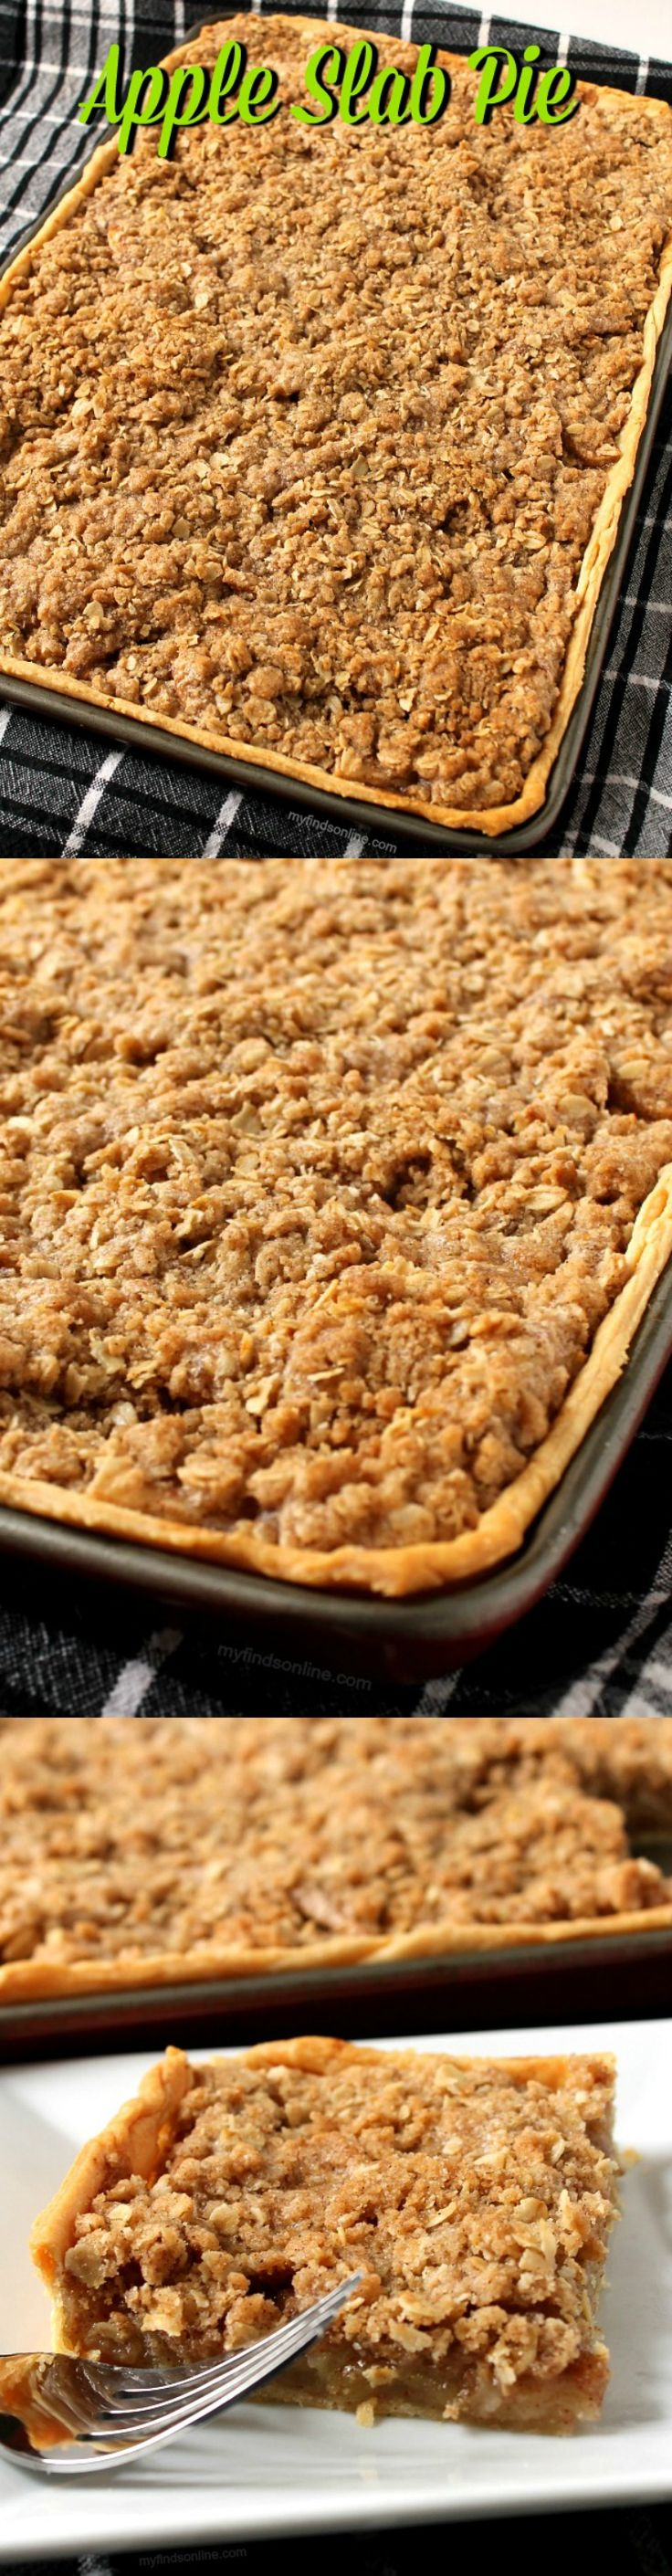 Apple Slab Pie With Cinnamon Streusel Topping / myfindsonline.com